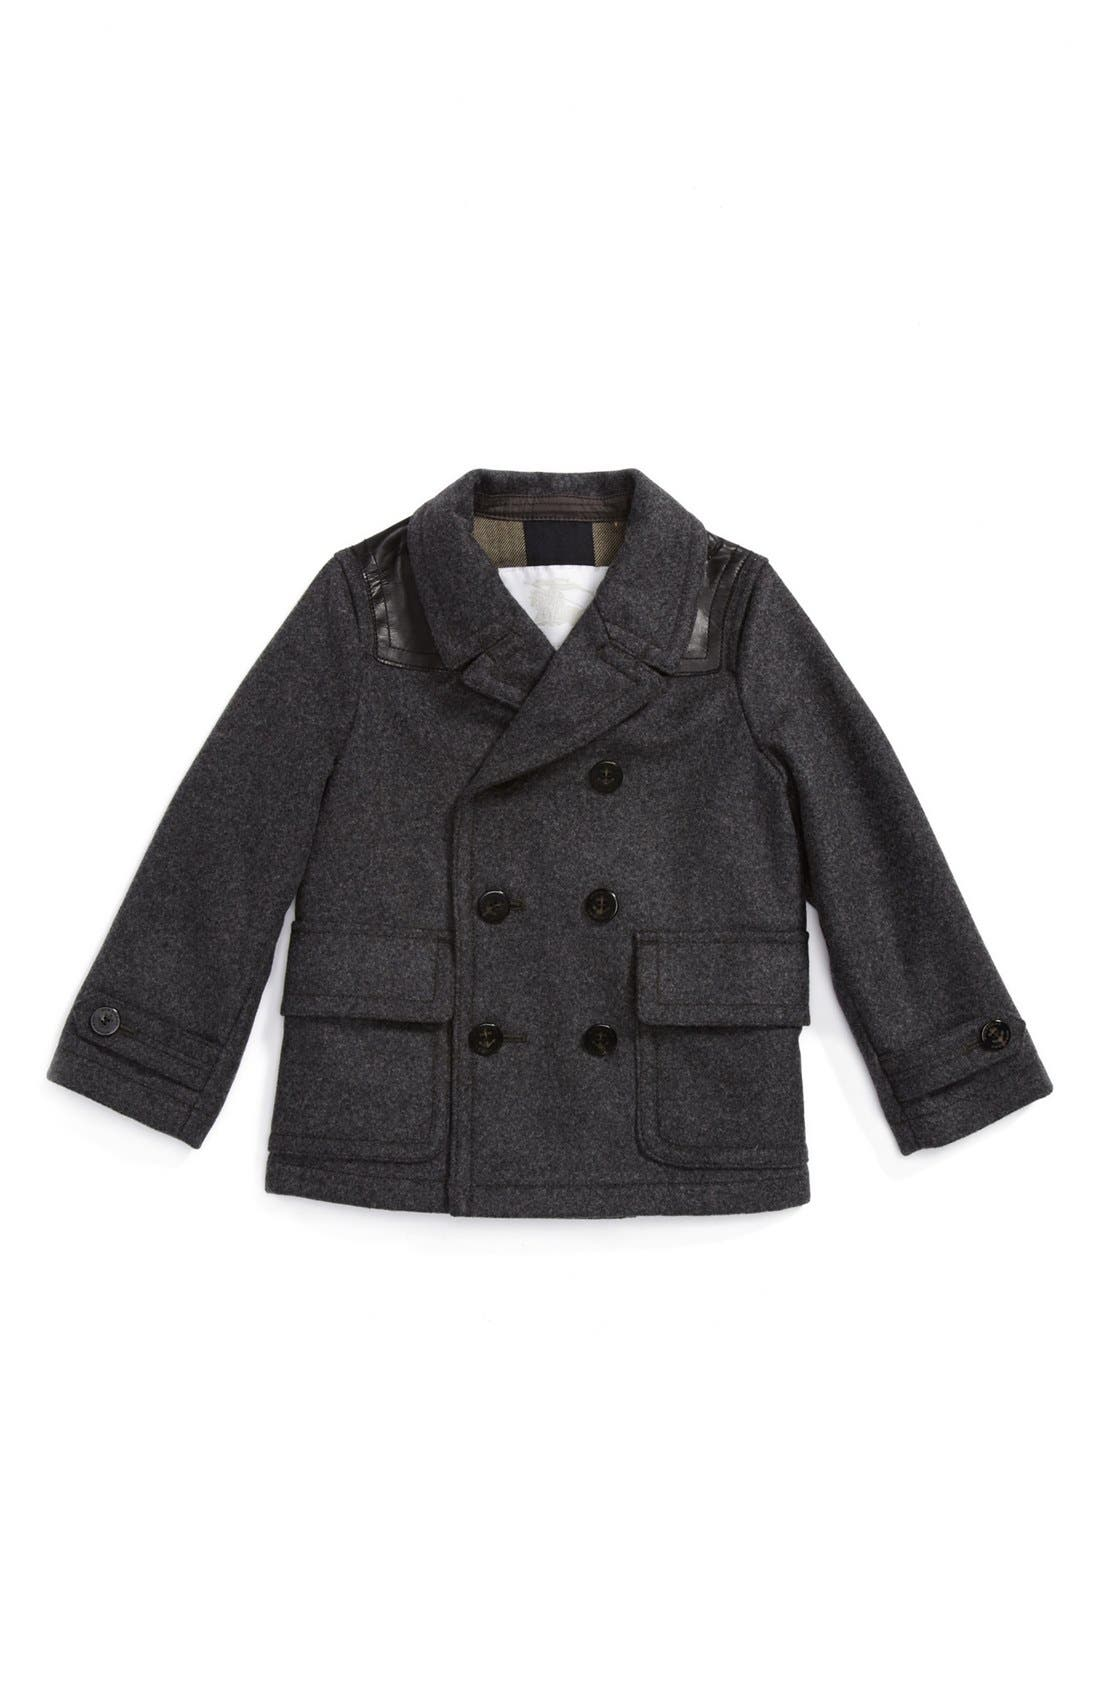 Alternate Image 1 Selected - Burberry Wool Peacoat (Baby Boys)